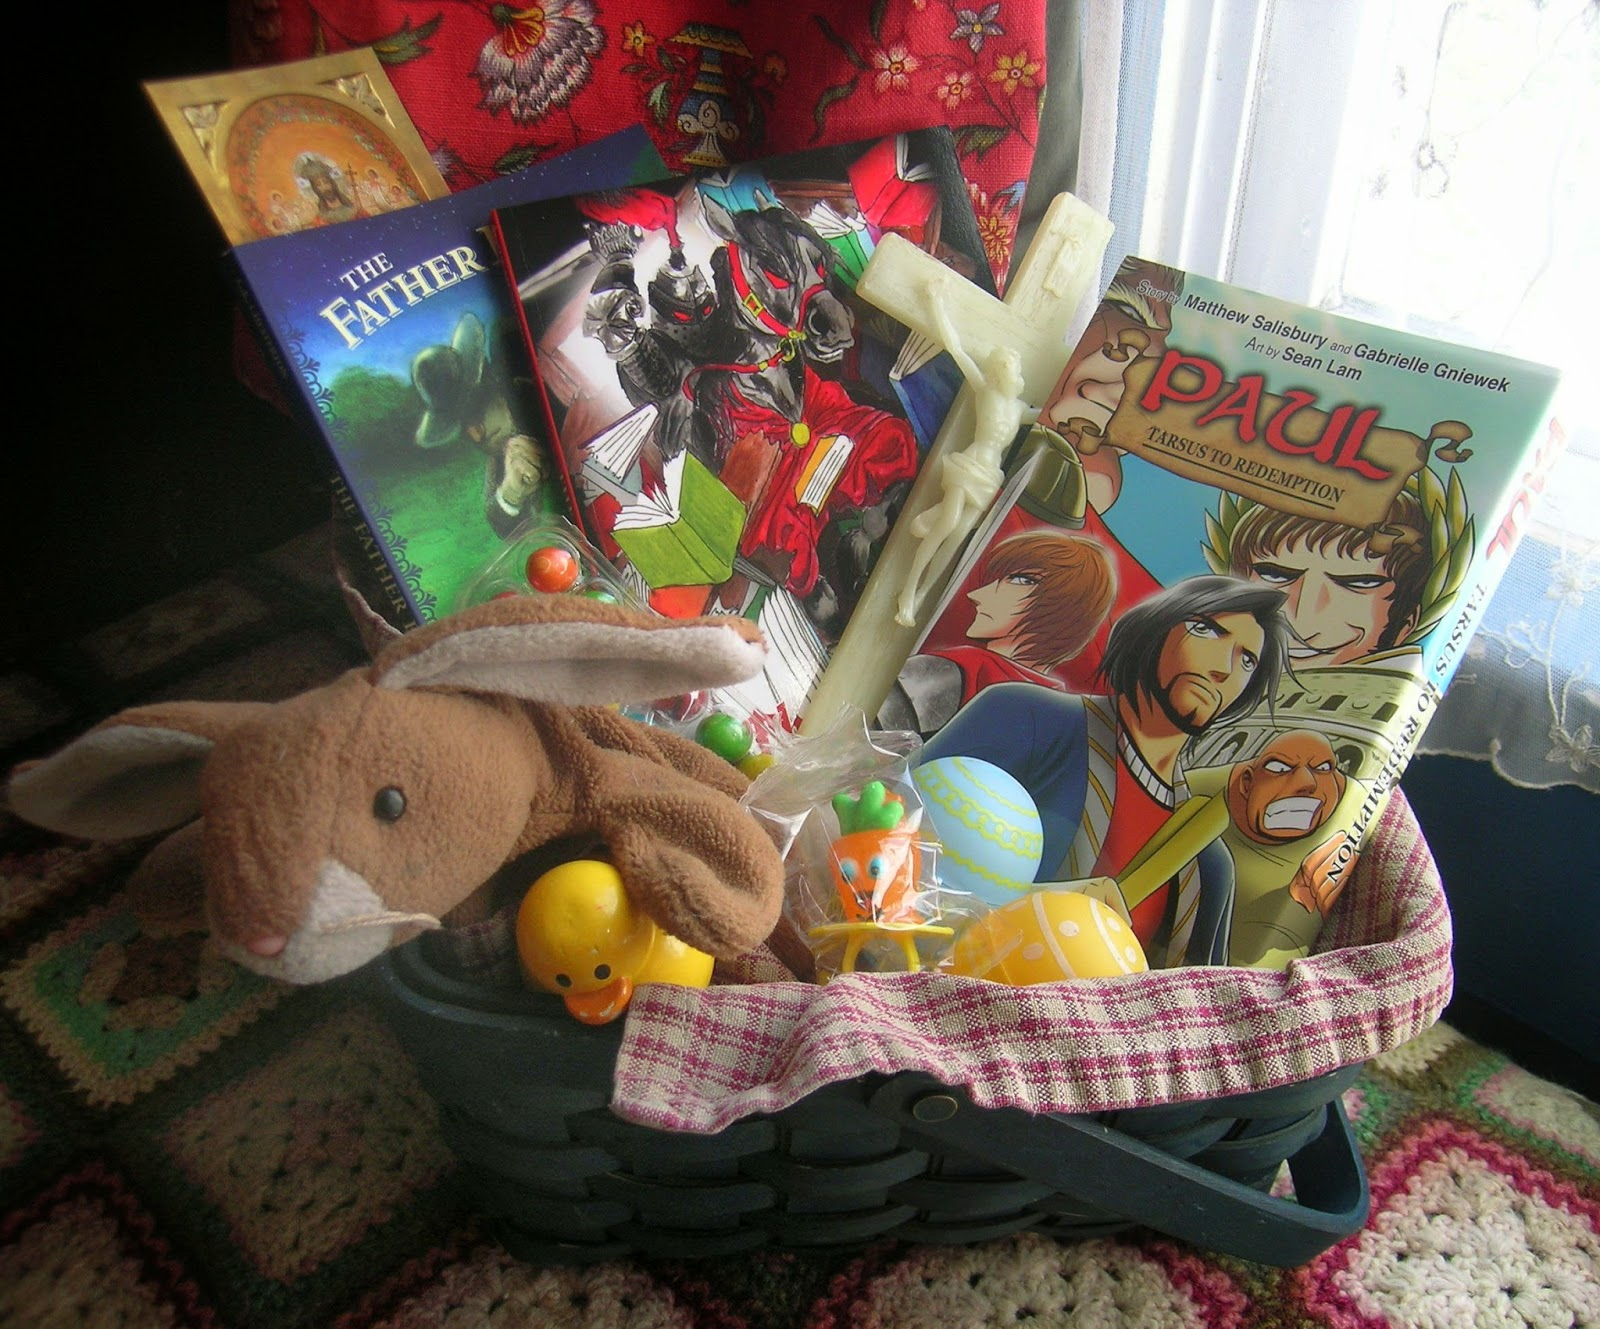 Easter gift 3 year old images gift and gift ideas sample house art journal easter basket tour 2014 8 10 year old boy basket easter basket tour negle Images